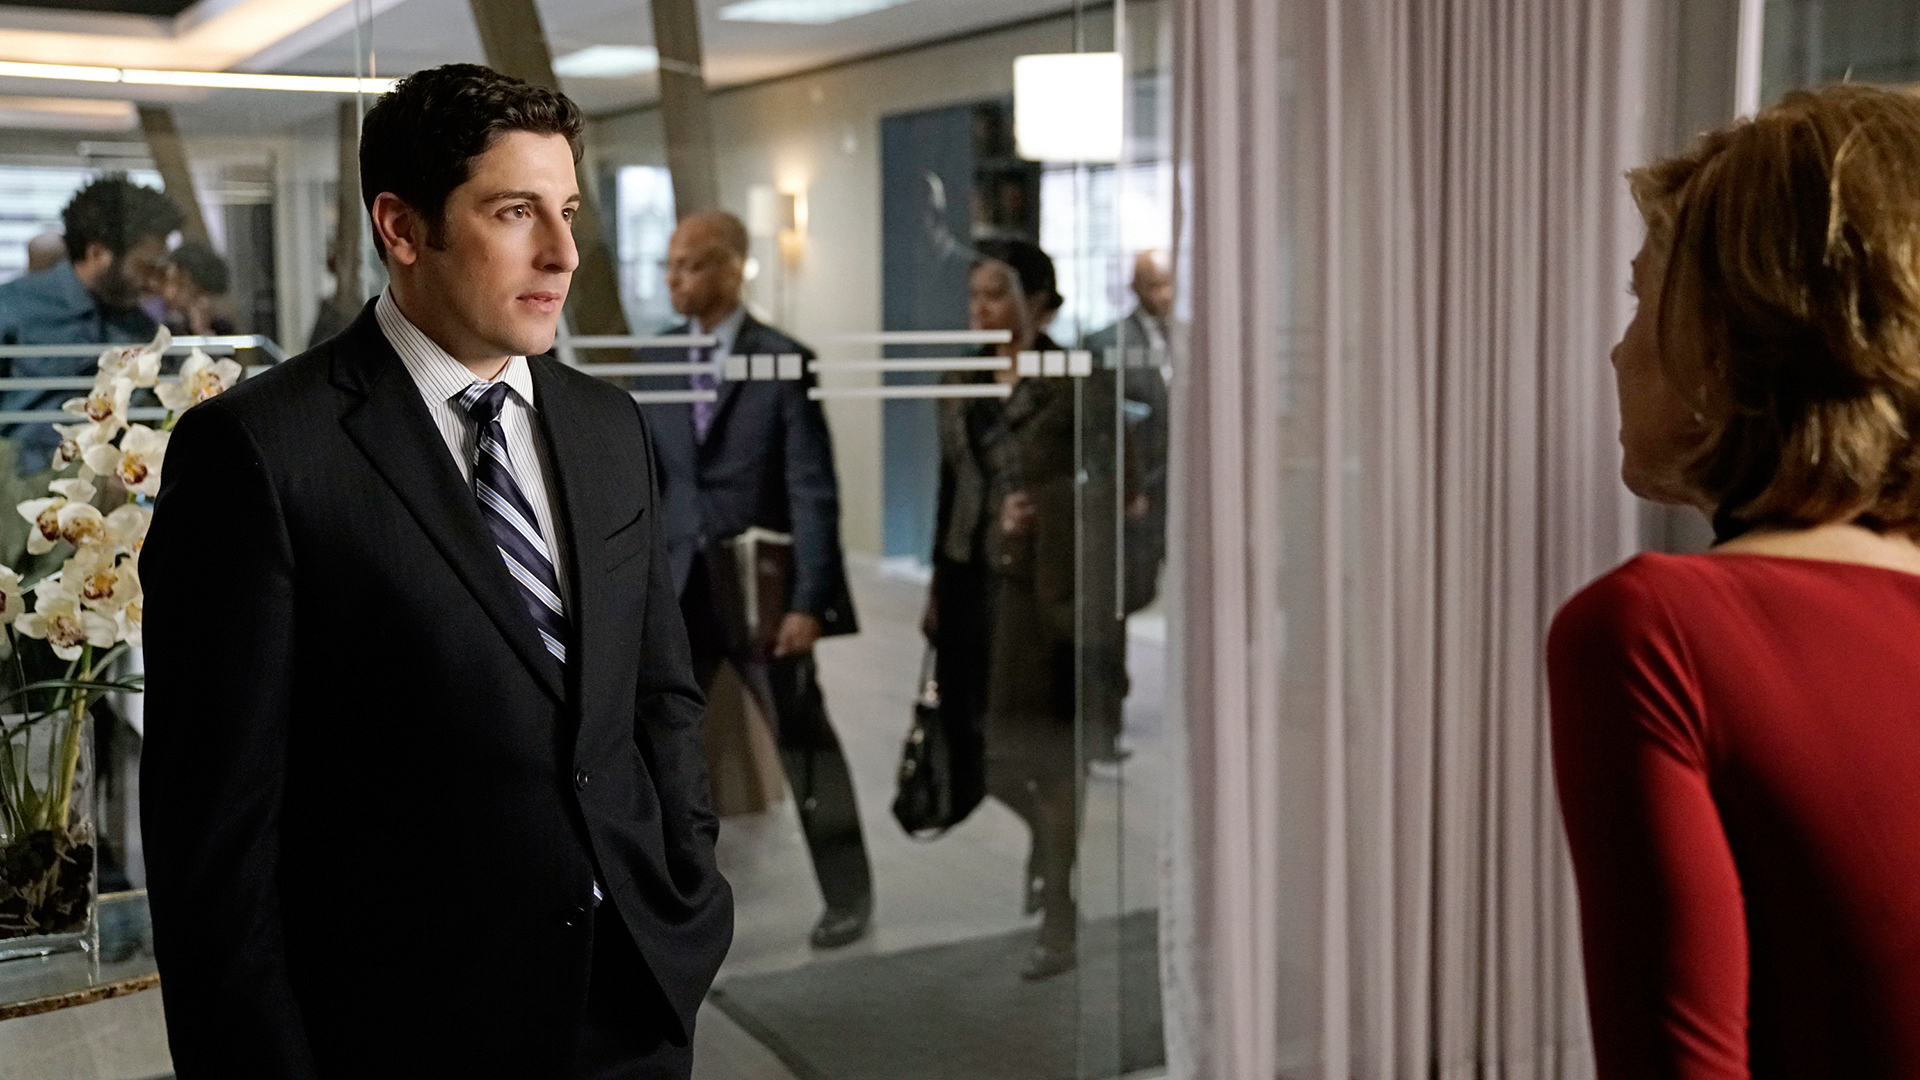 Jason Biggs as Dylan Stack